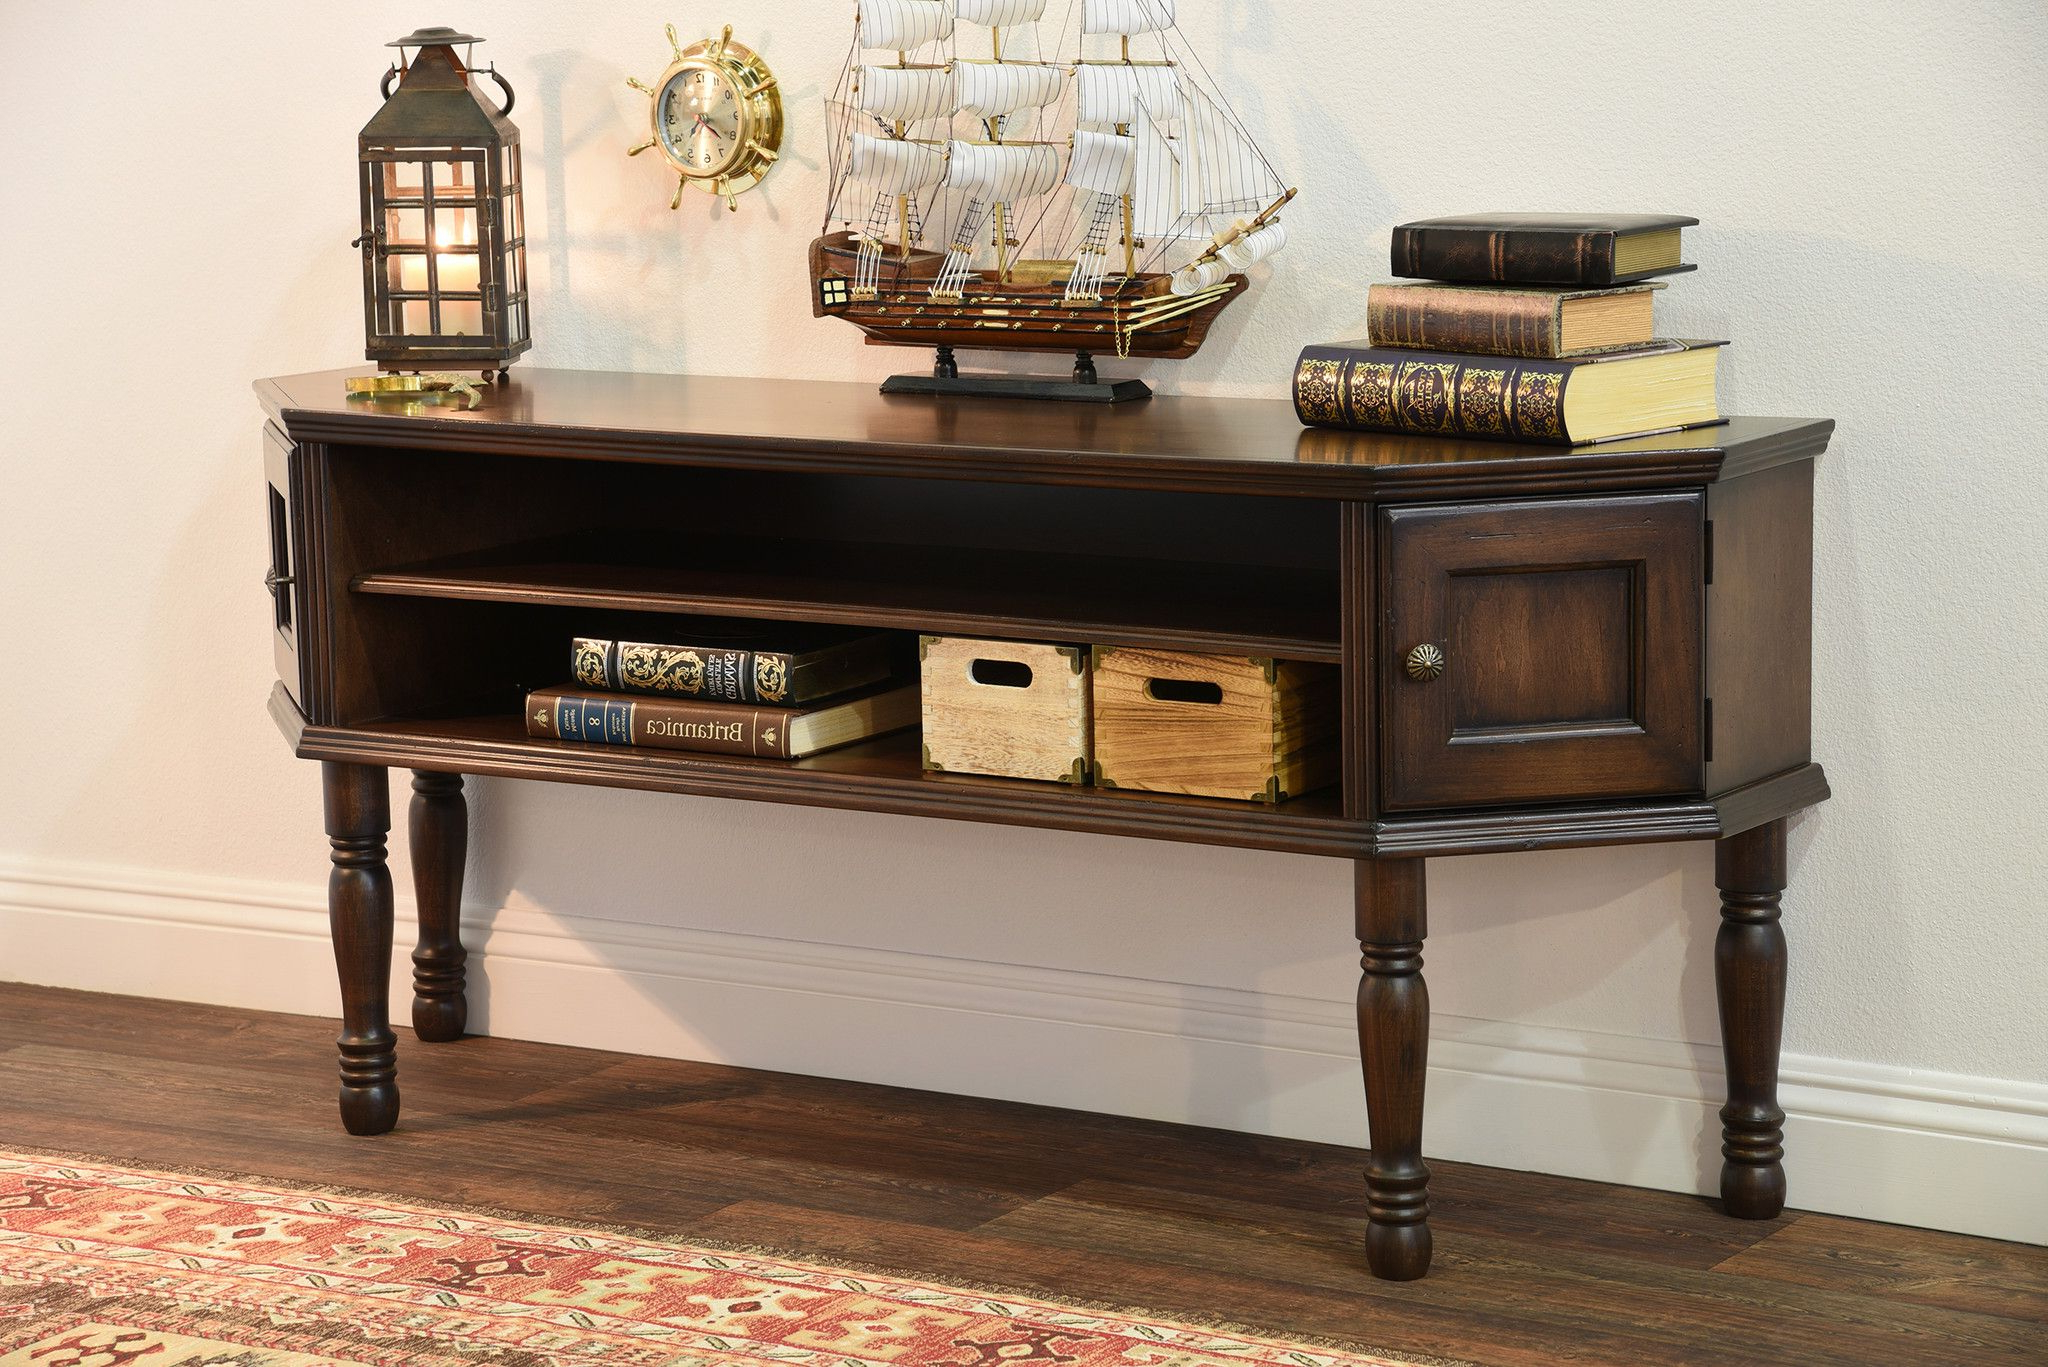 Traditional Brown Captain's Credenza – Vintage – Dark With Whalen Shelf Tv Stands With Floater Mount In Weathered Dark Pine Finish (View 13 of 20)